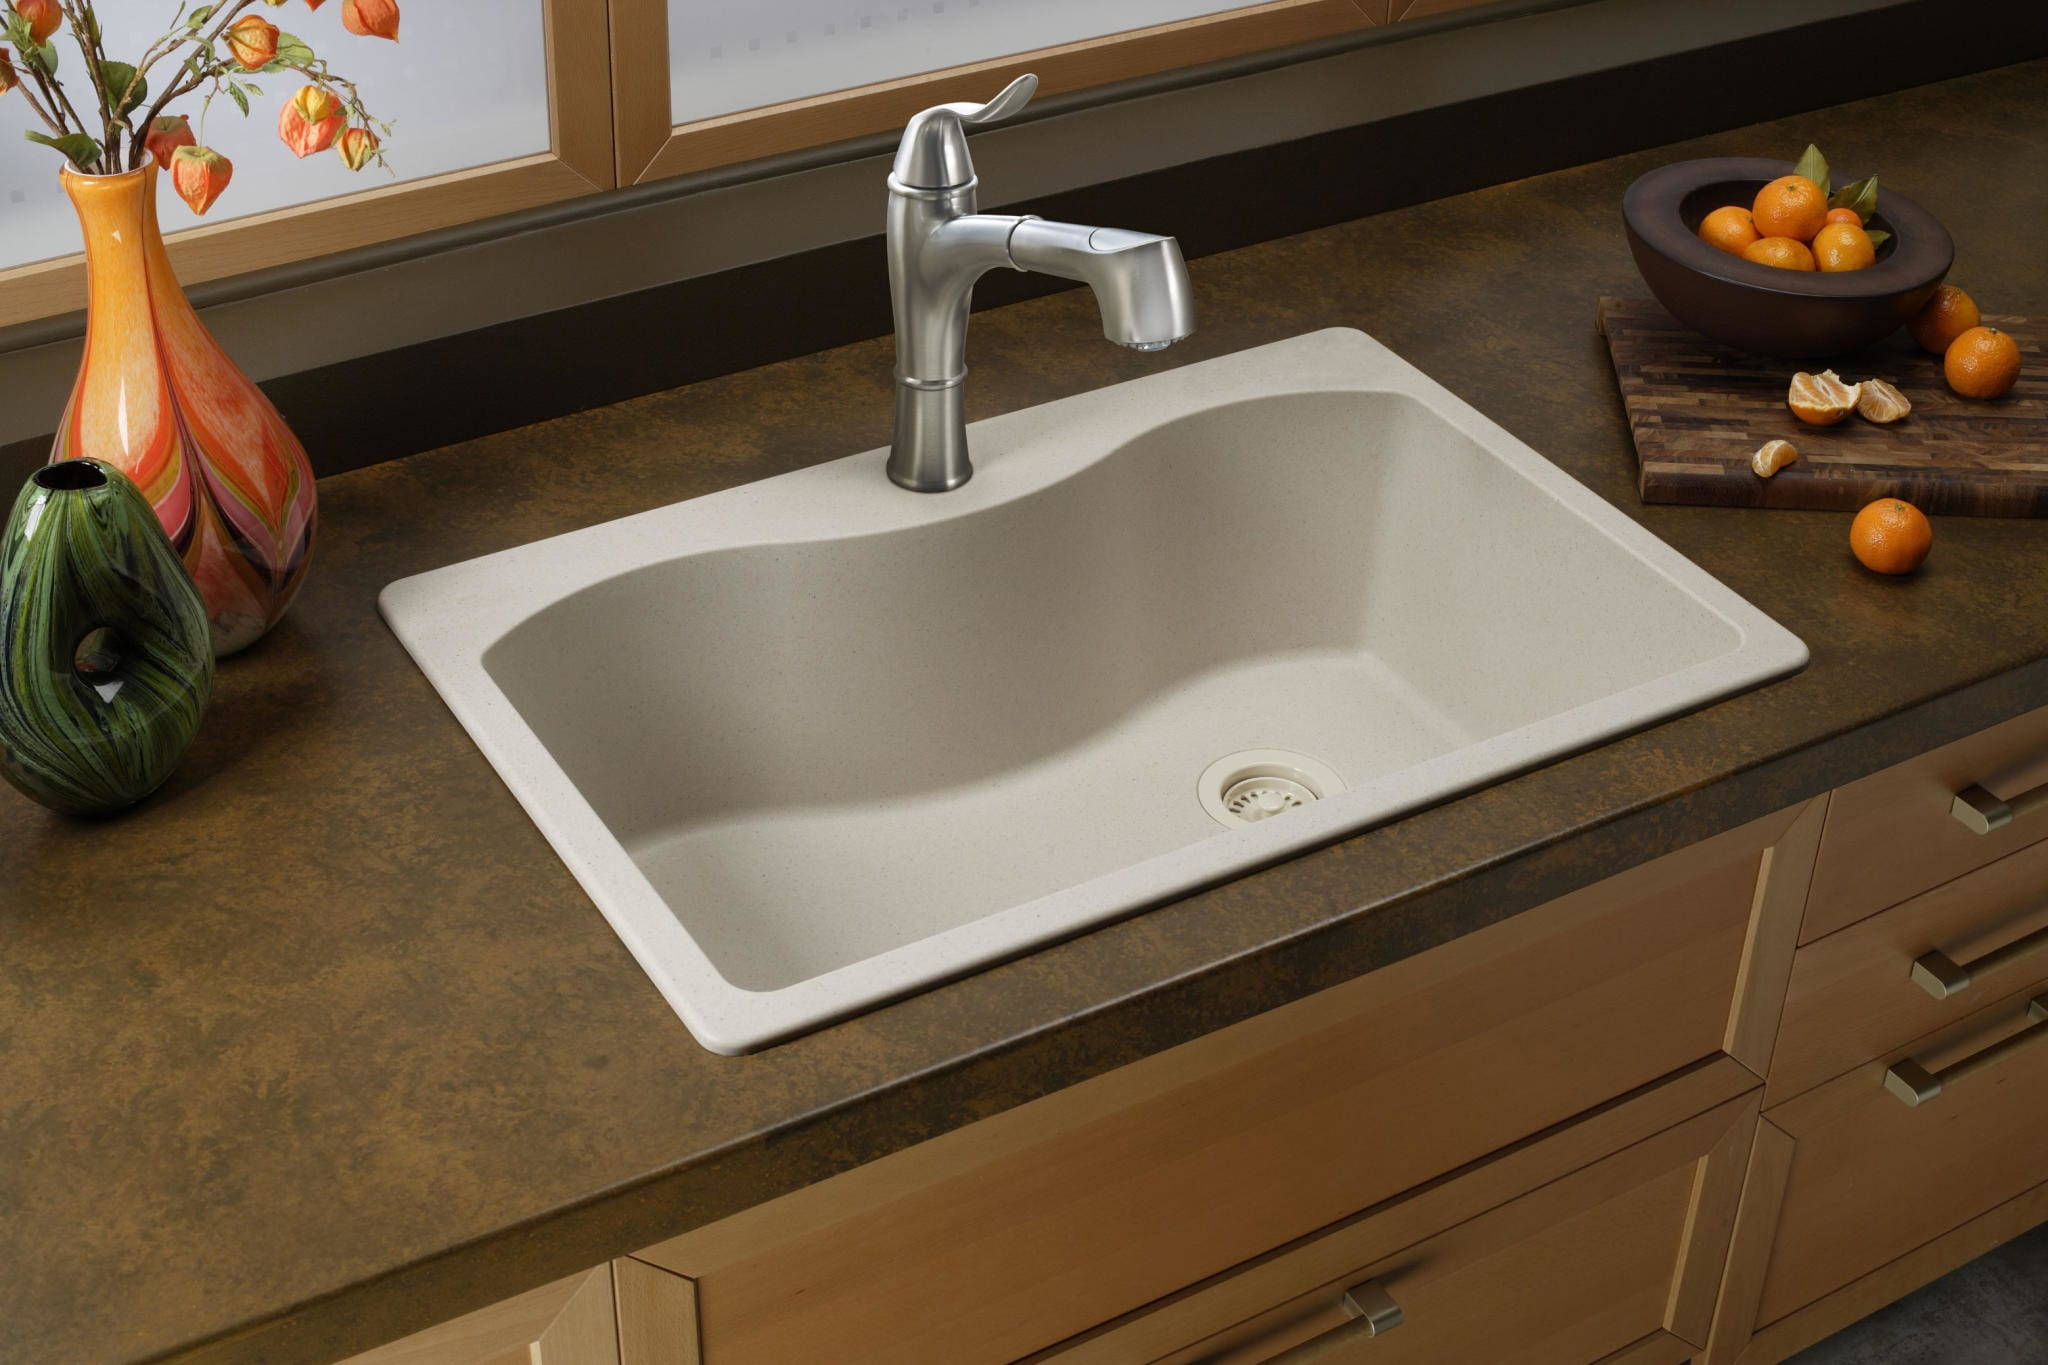 Chipped Quartz Countertop Repair Quartz Sinks Everything You Need To Know Qualitybath